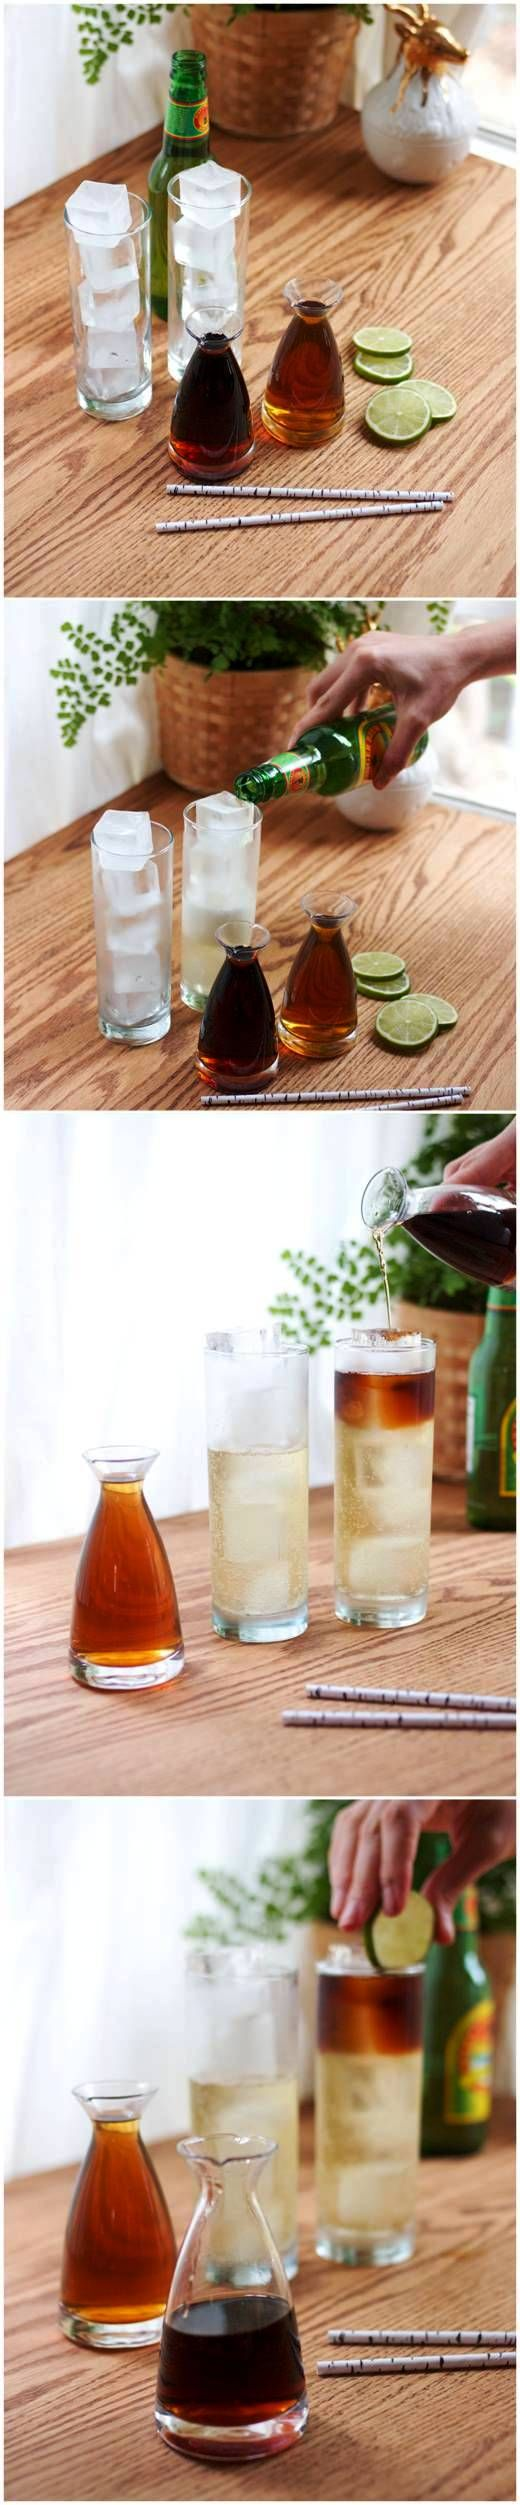 Easy cocktail. Dark & Stormy: In an ice filled glass, add 5 oz of ginger beer, then top with 2 oz of rum. Squeeze in lime. Add a straw and serve immediately.